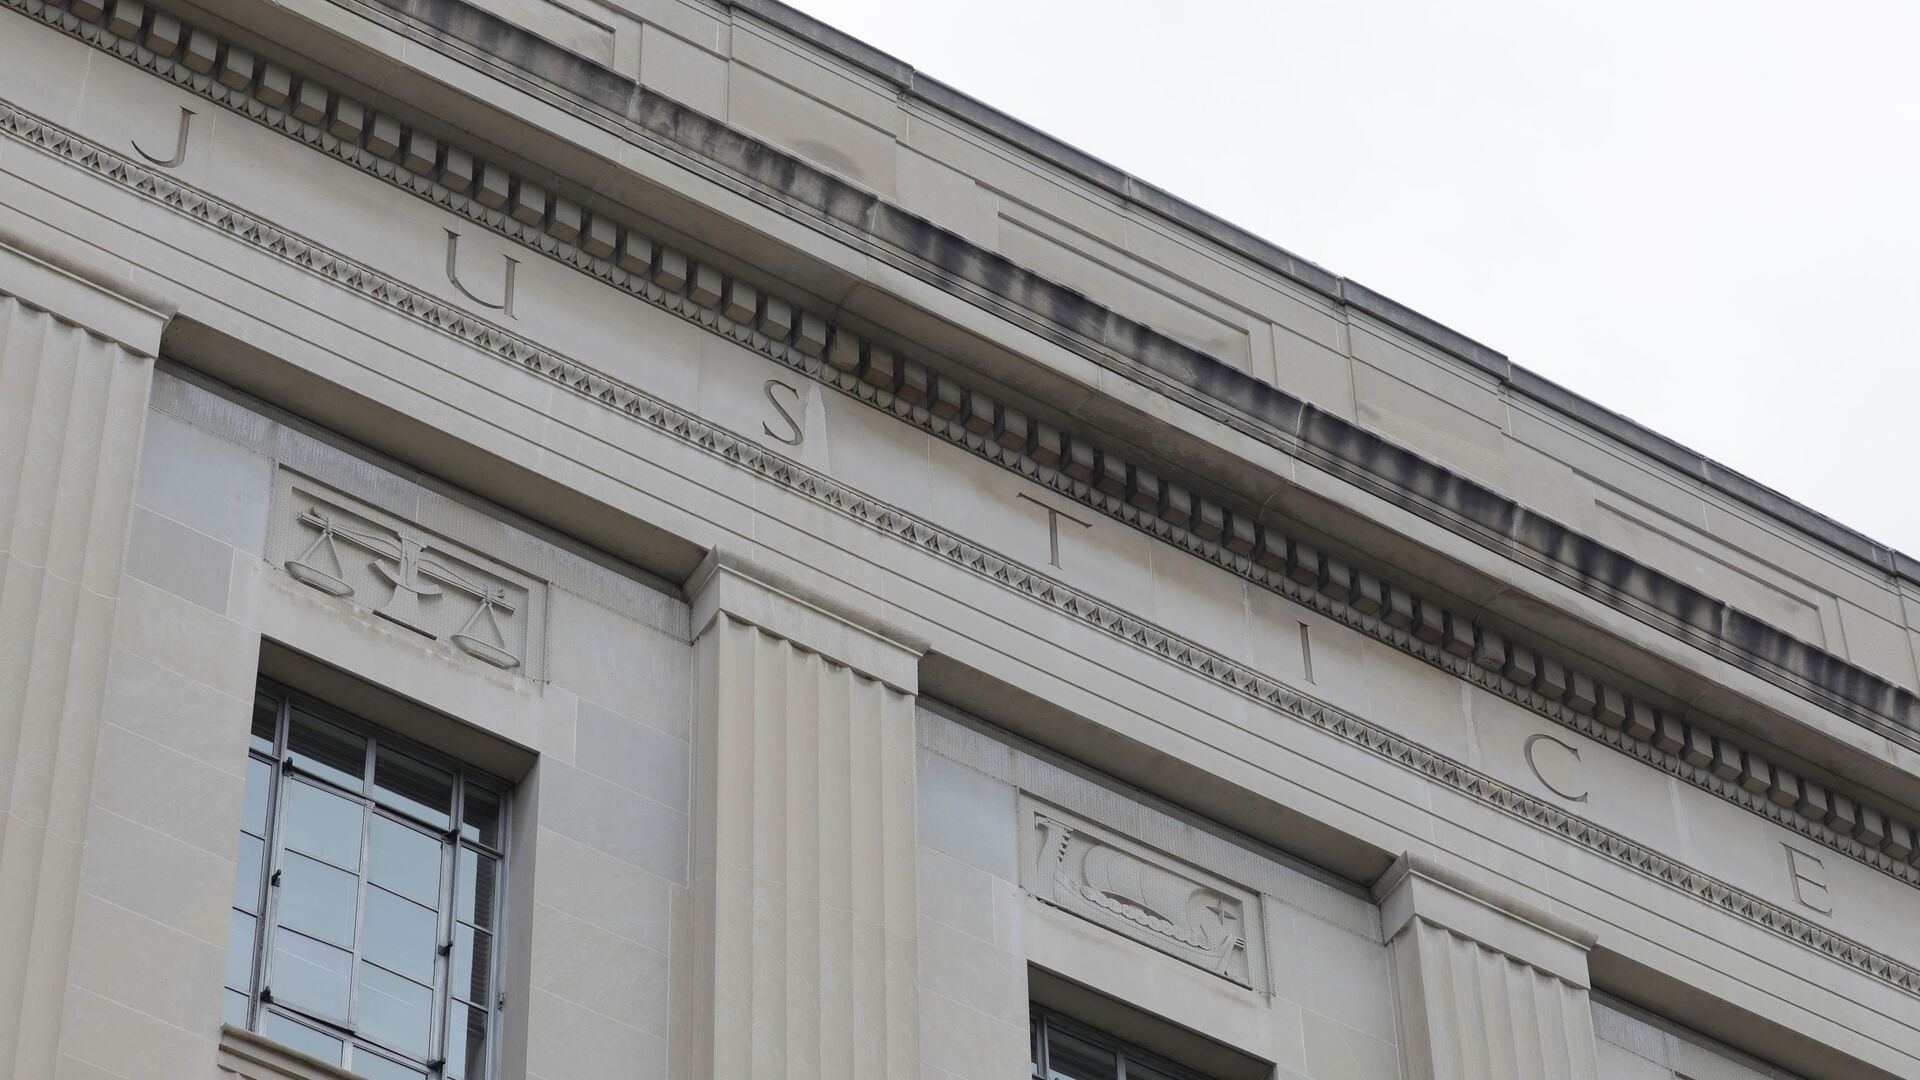 The word justice is seen engraved at the headquarters of the United States Department of Justice (DOJ) in Washington, D.C., U.S., May 10, 2021. - Sputnik International, 1920, 14.09.2021